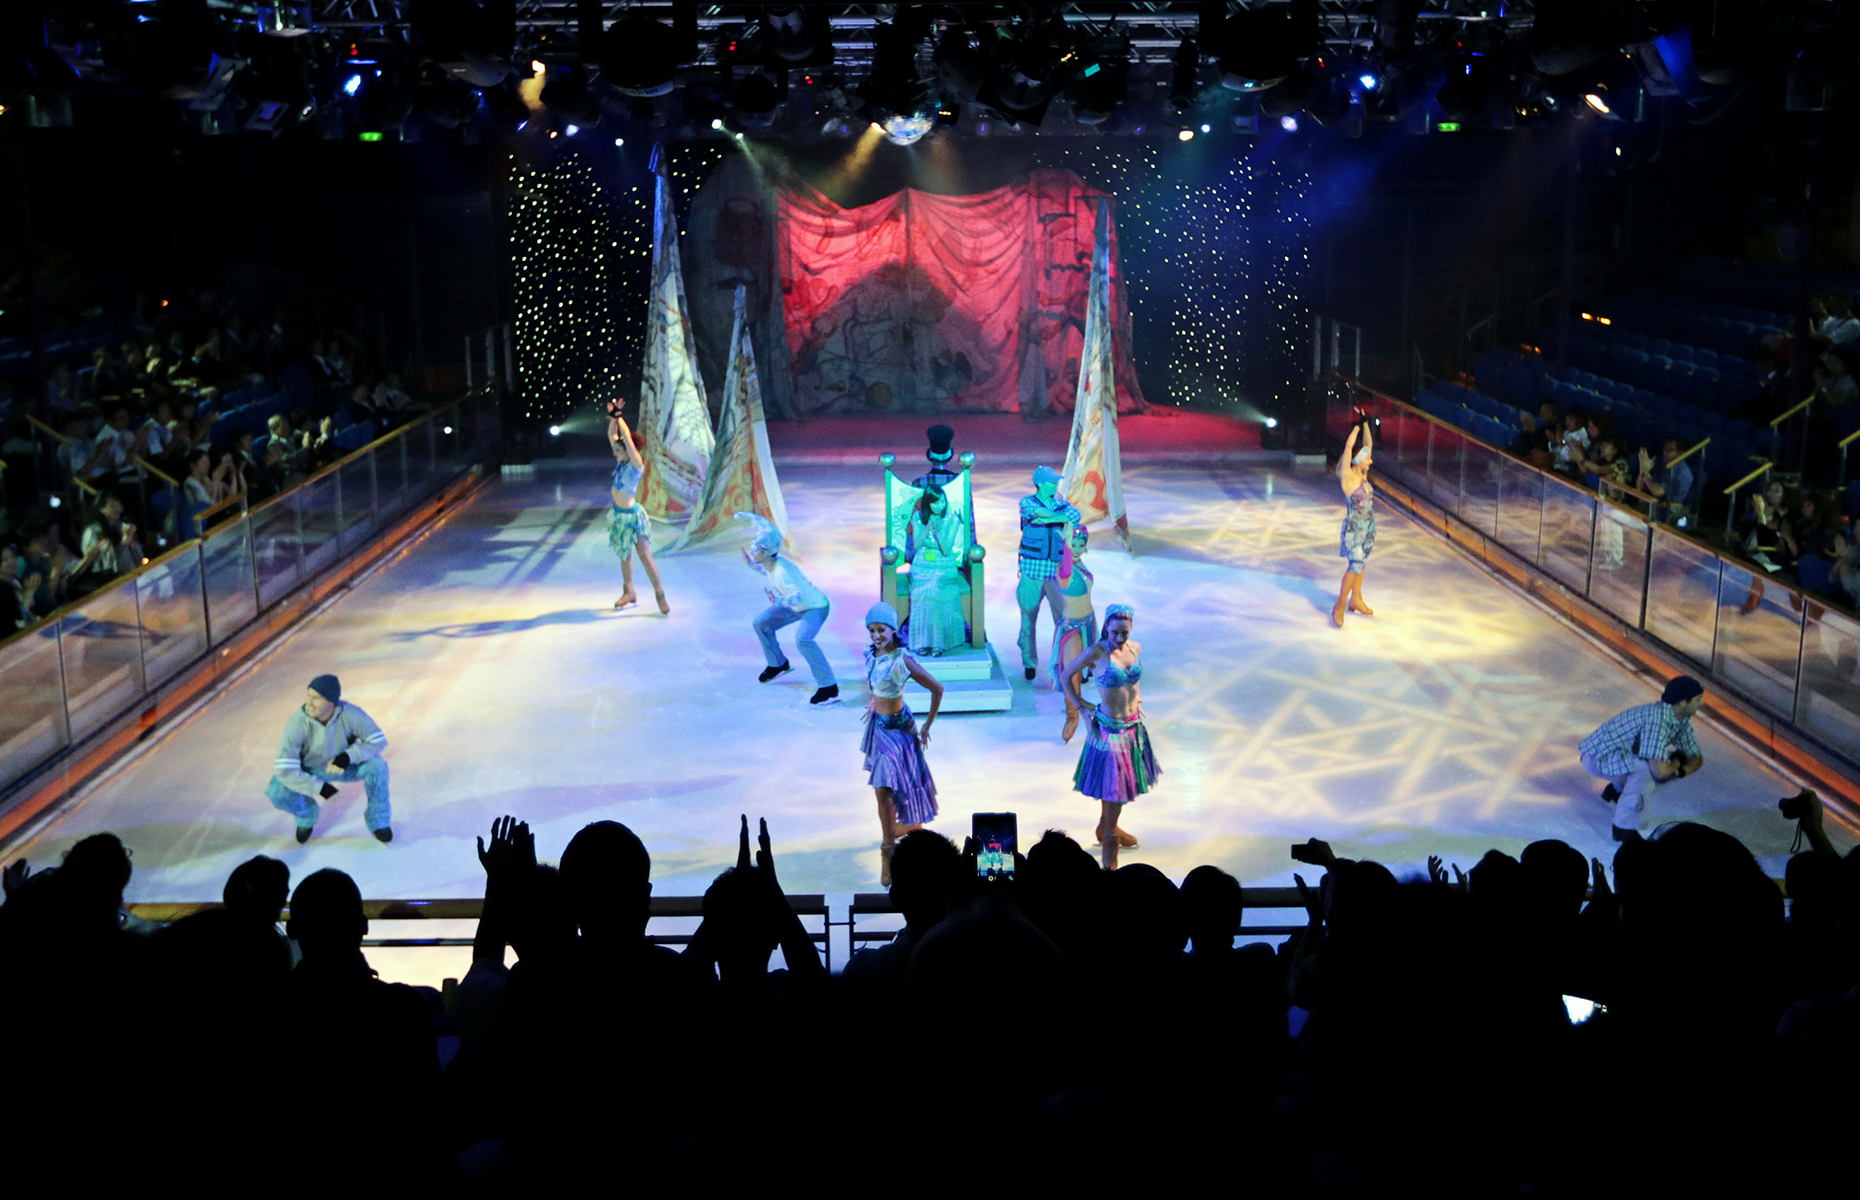 Slide 3 of 31: Skaters present a complimentary ice-skating show at the Royal Caribbean International's mega-ship, the Voyager of the Seas, is lit as it is displayed at a shooping street of the ship, berthed at the Ohi wharf in Tokyo, Japan, on Saturday, September 14, 2013. Photographer: Yuriko Nakao/Bloomberg